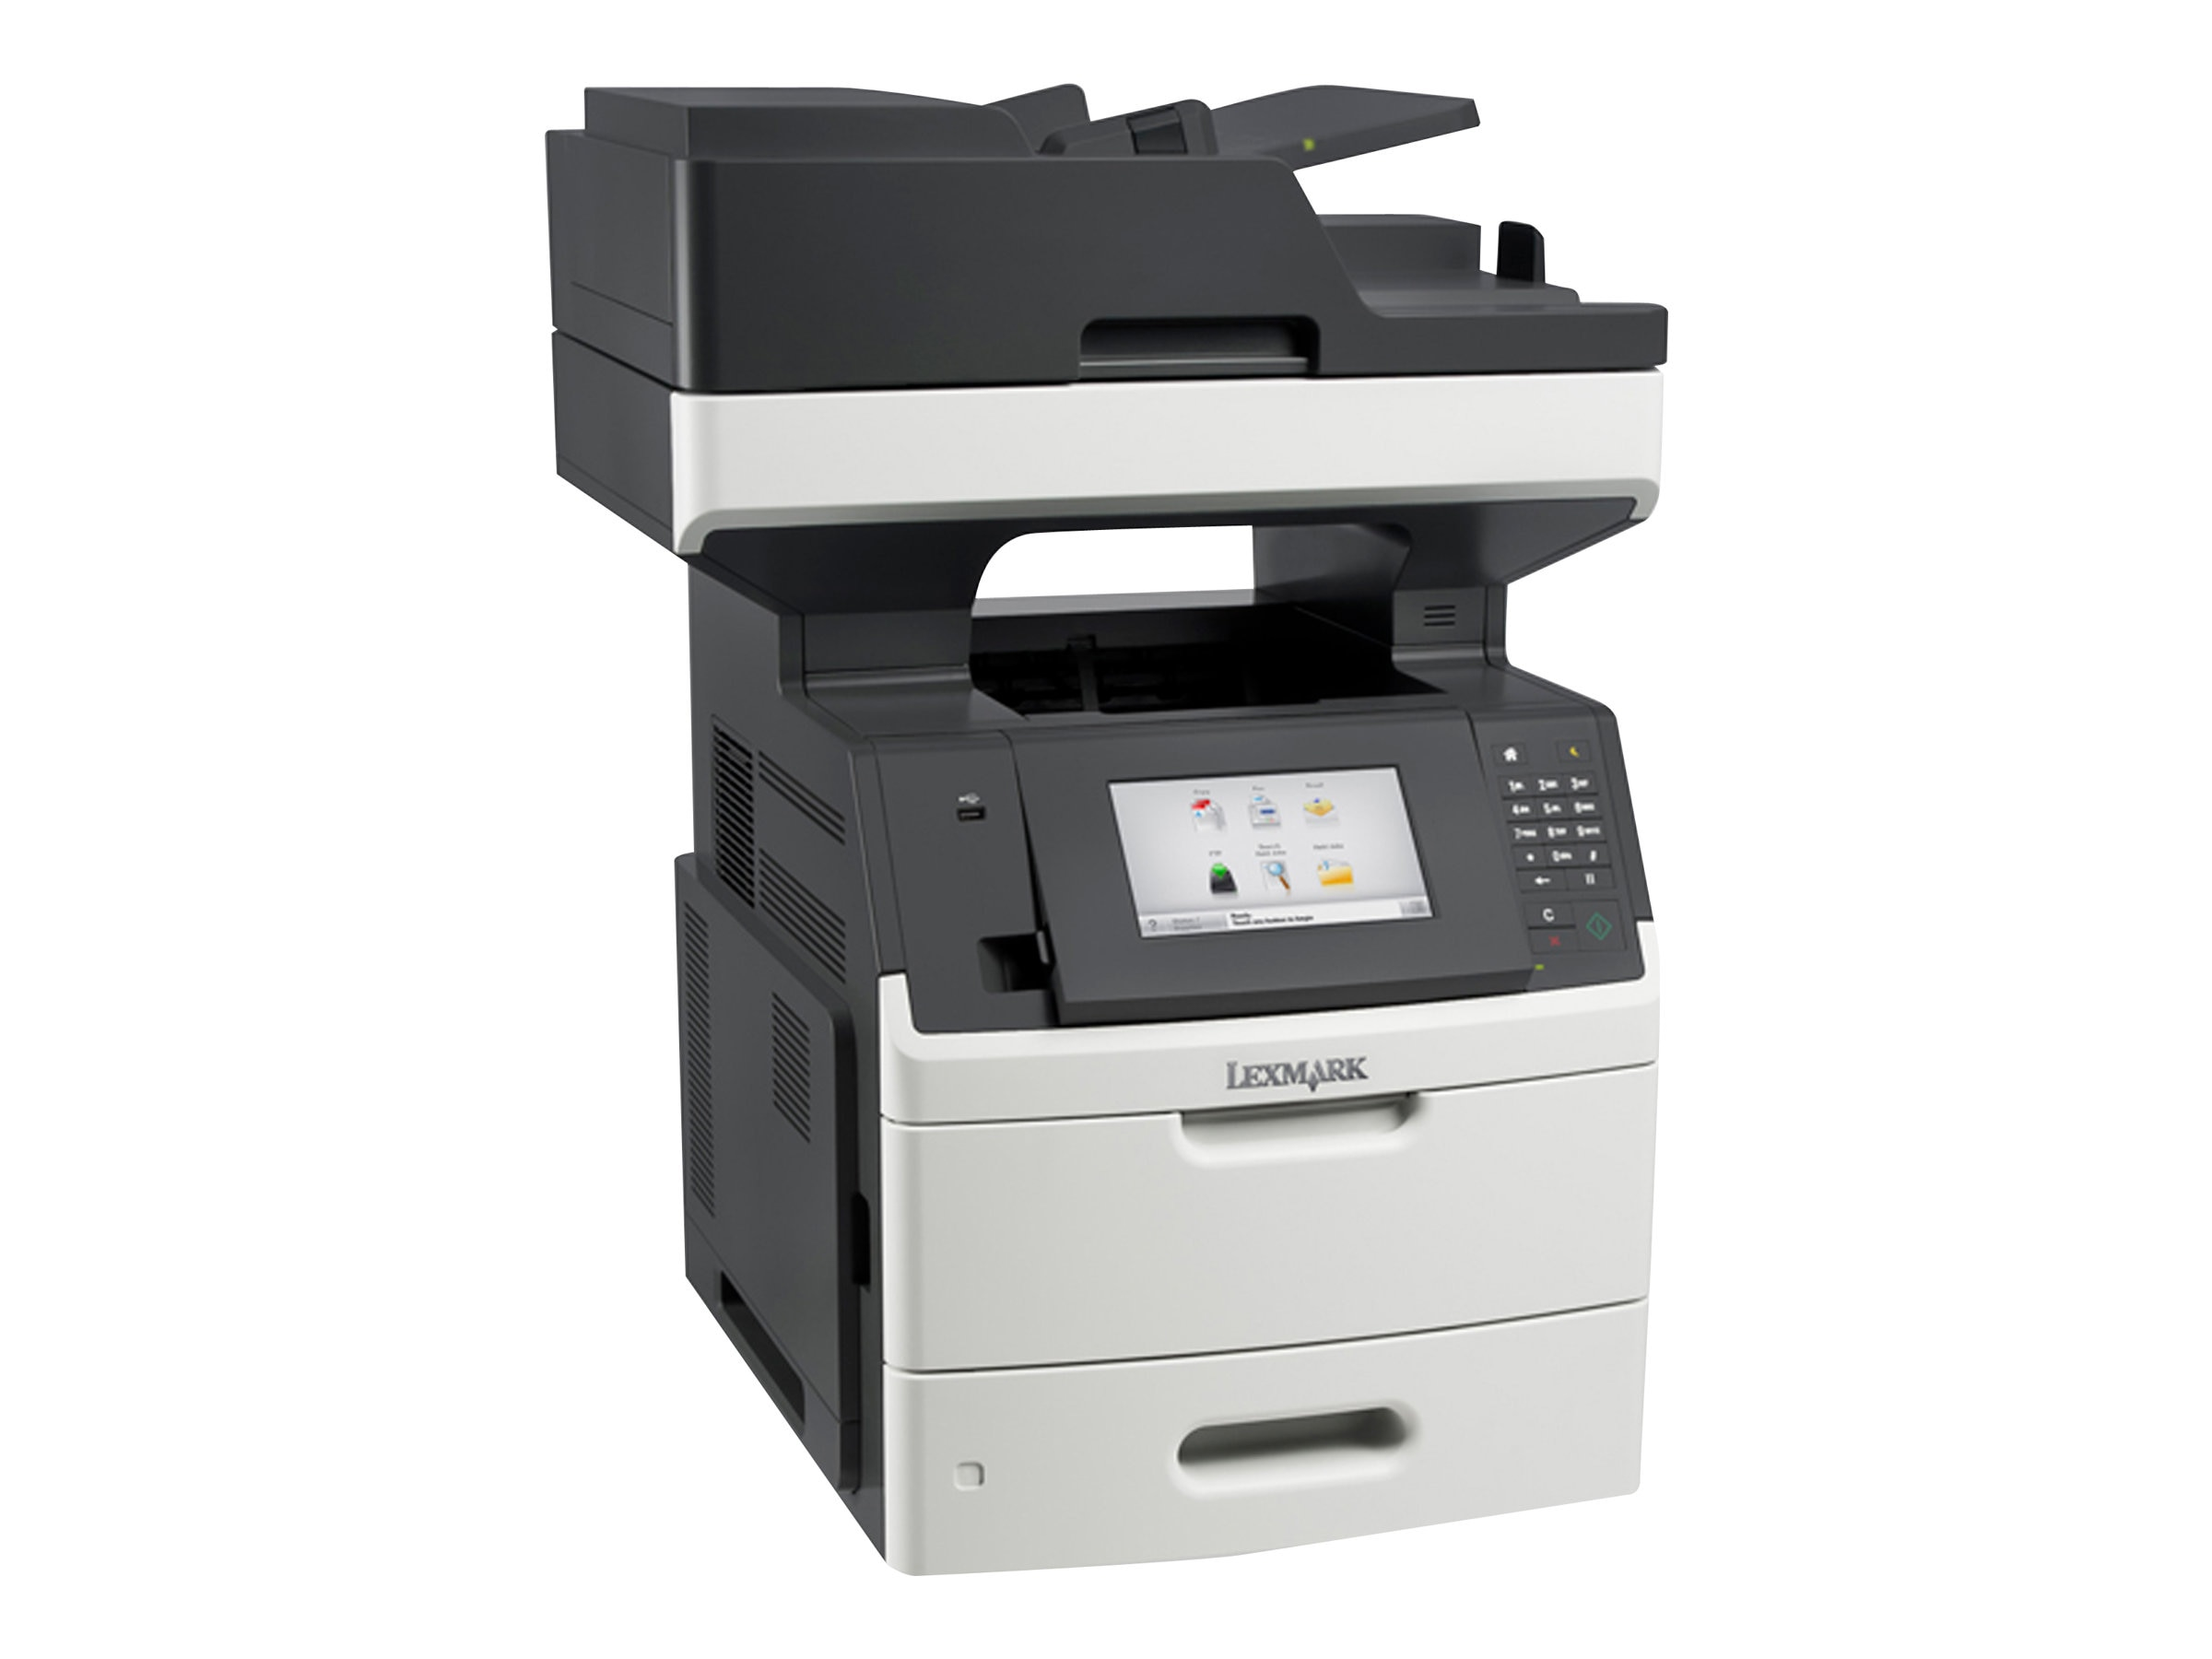 Lexmark MX710de Monochrome Laser Multifunction Printer, 24T7401